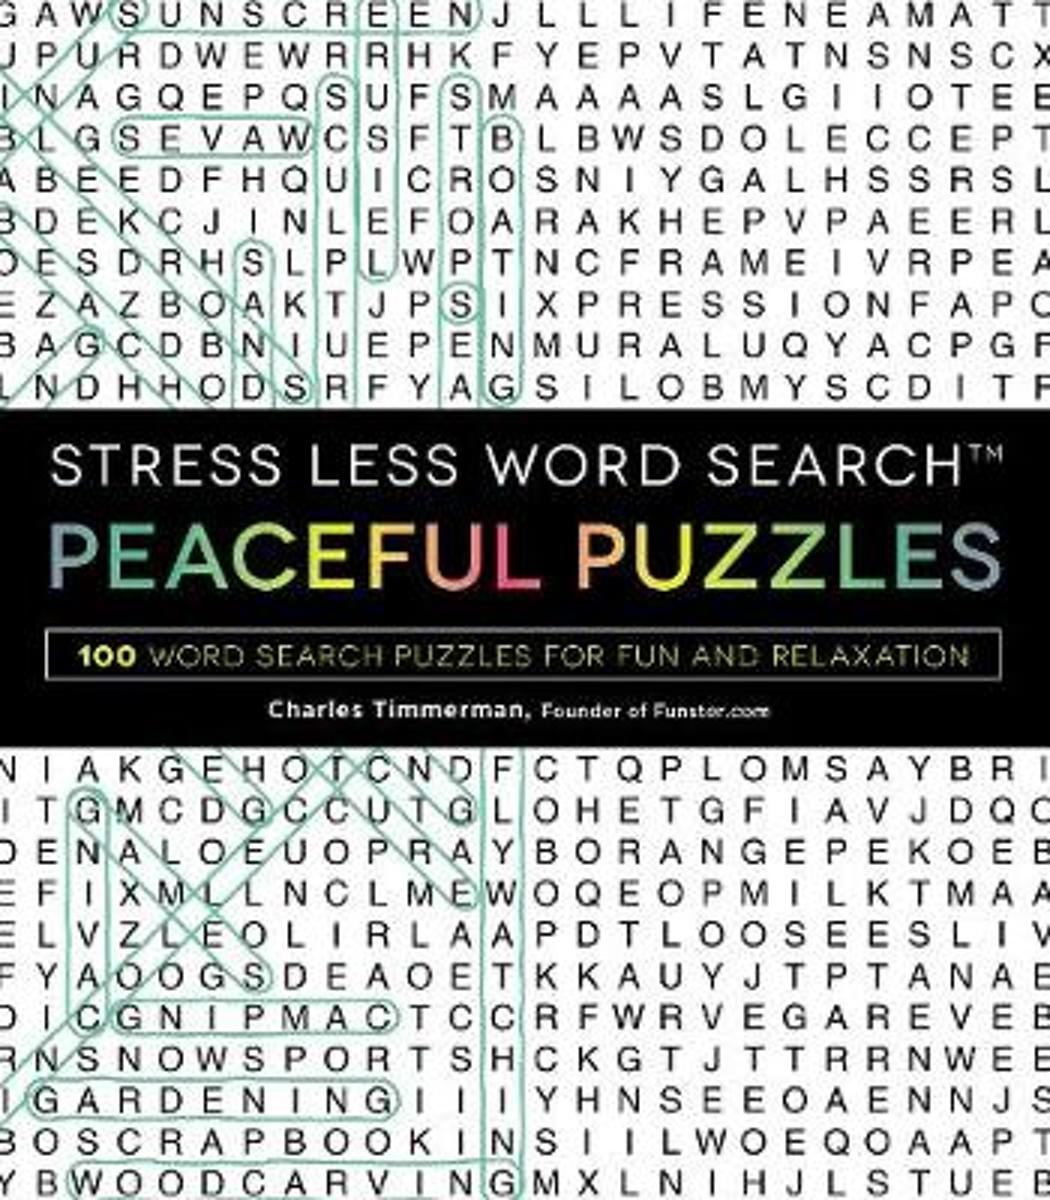 Stress Less Word Search - Peaceful Puzzles